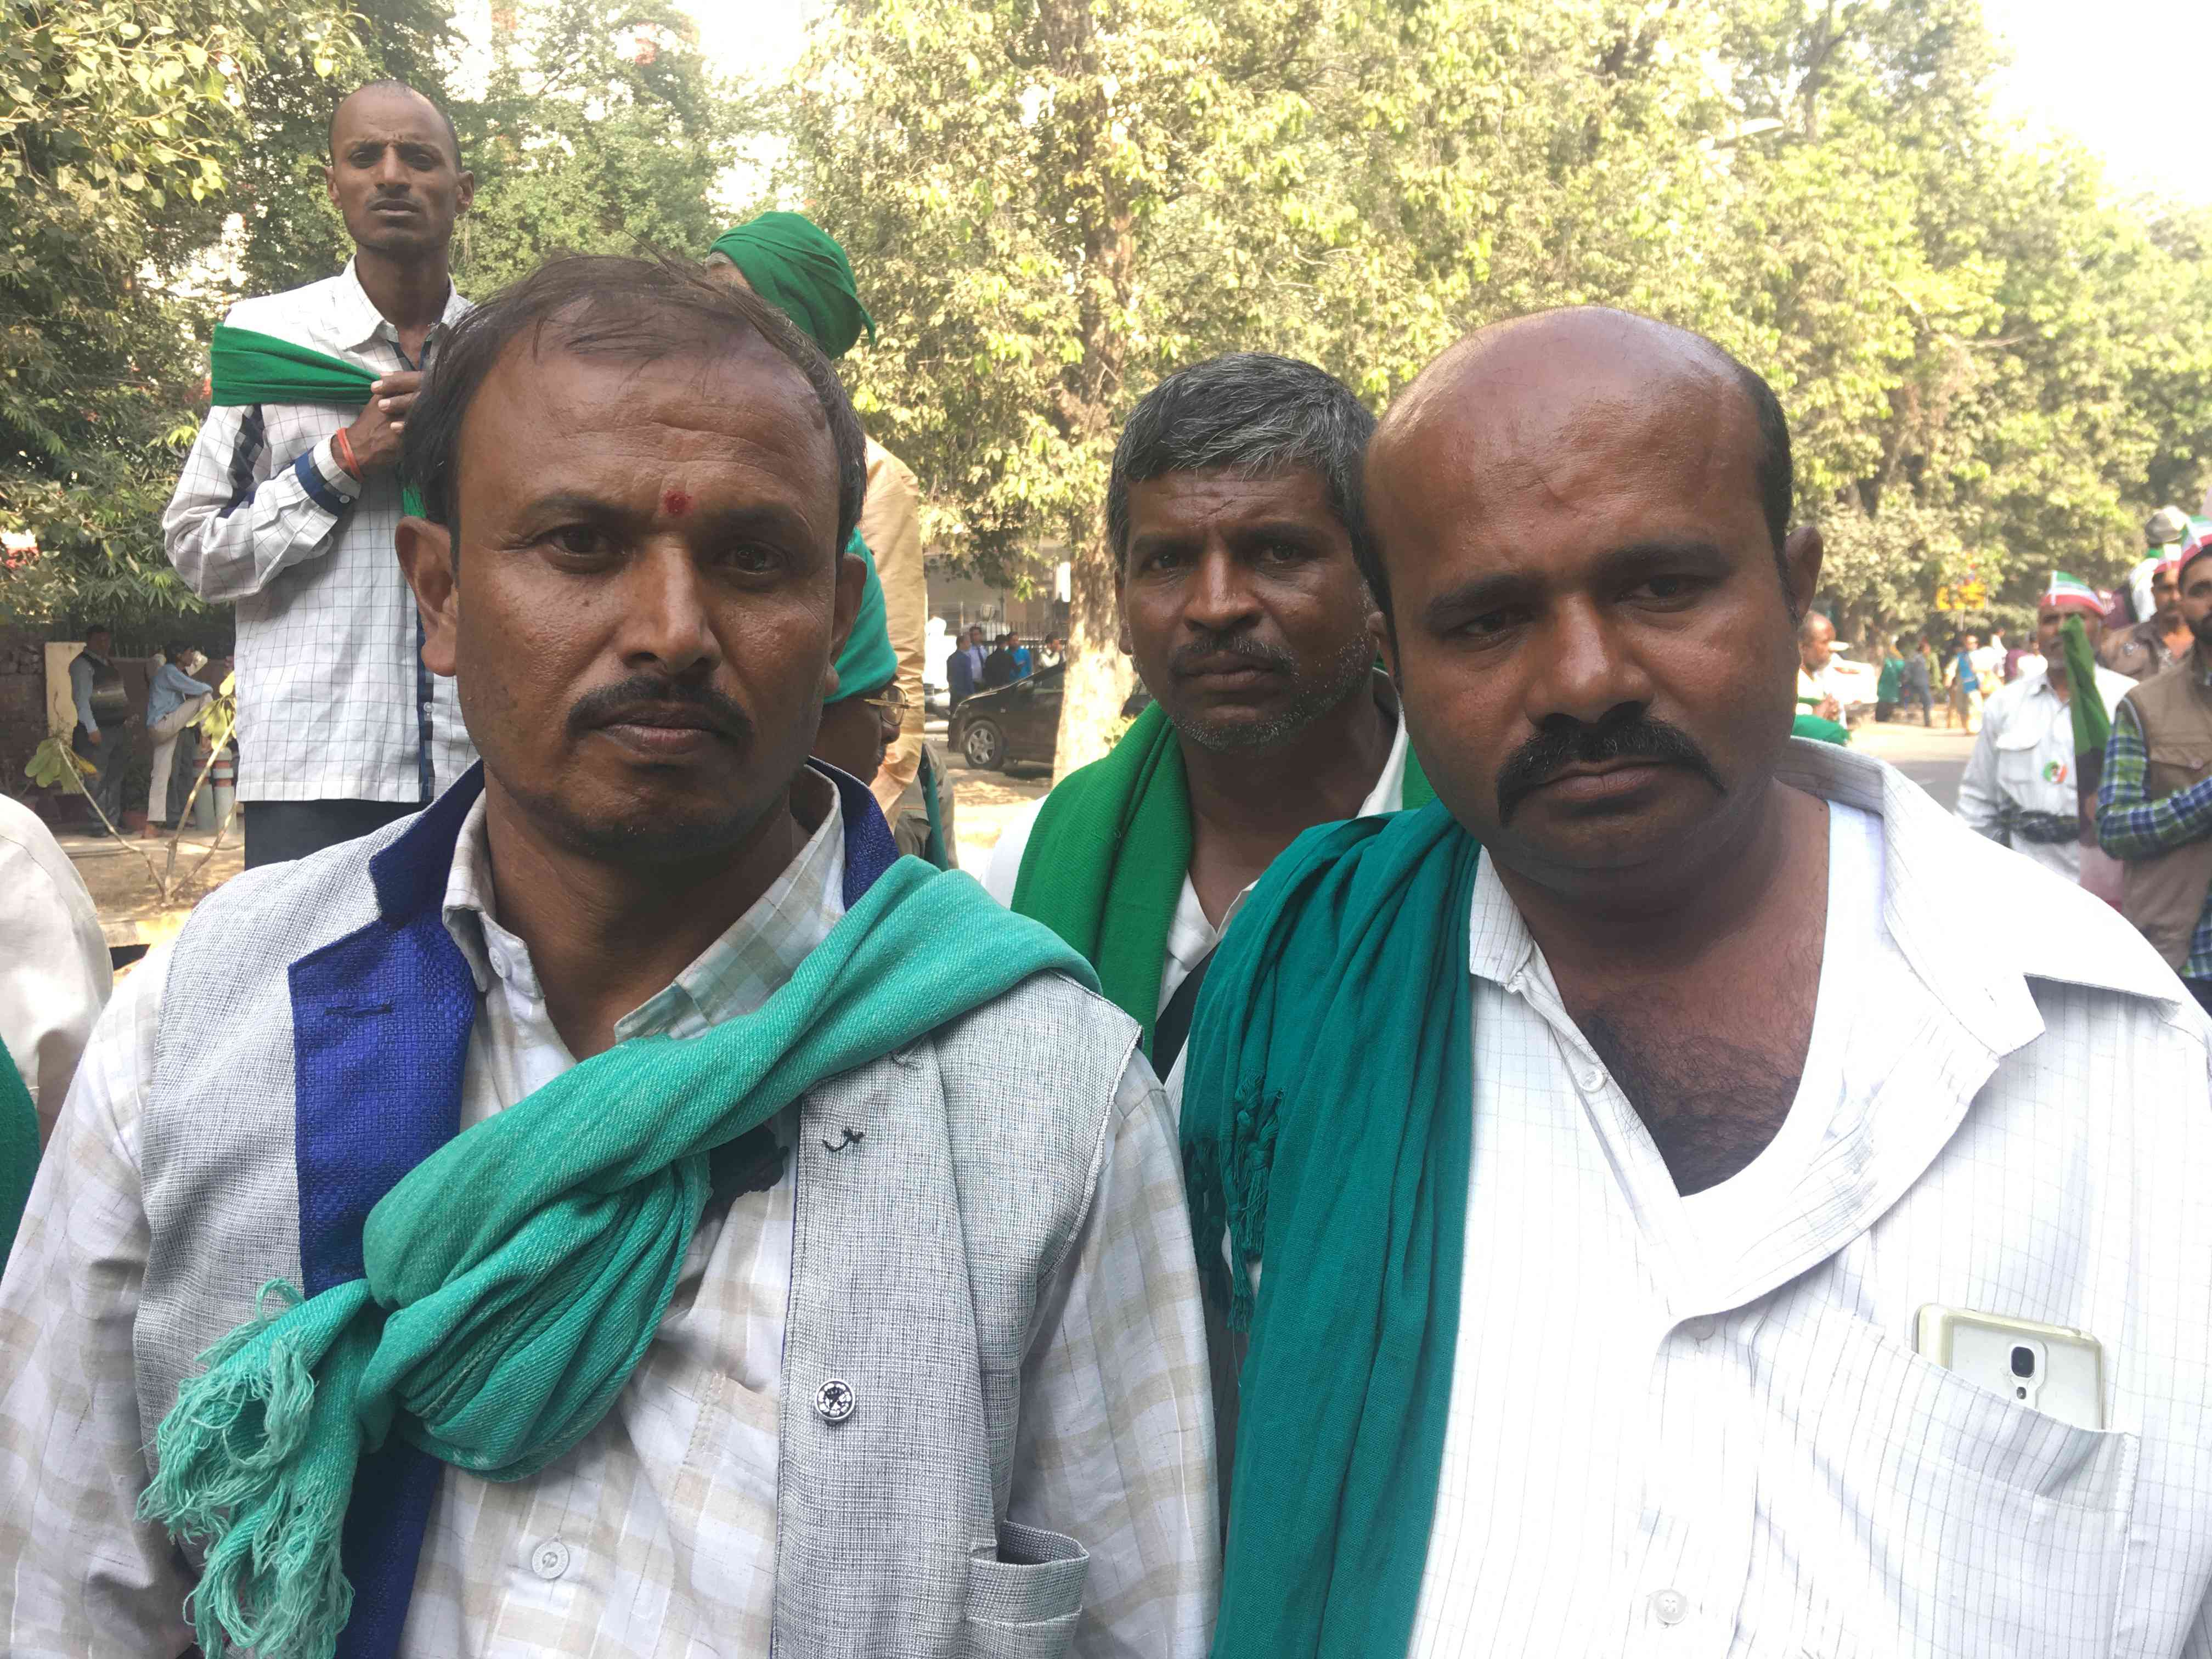 G Narasimha (left) and BN Ravish (right) from Karnataka said they would visit the Ram temple if it were built.